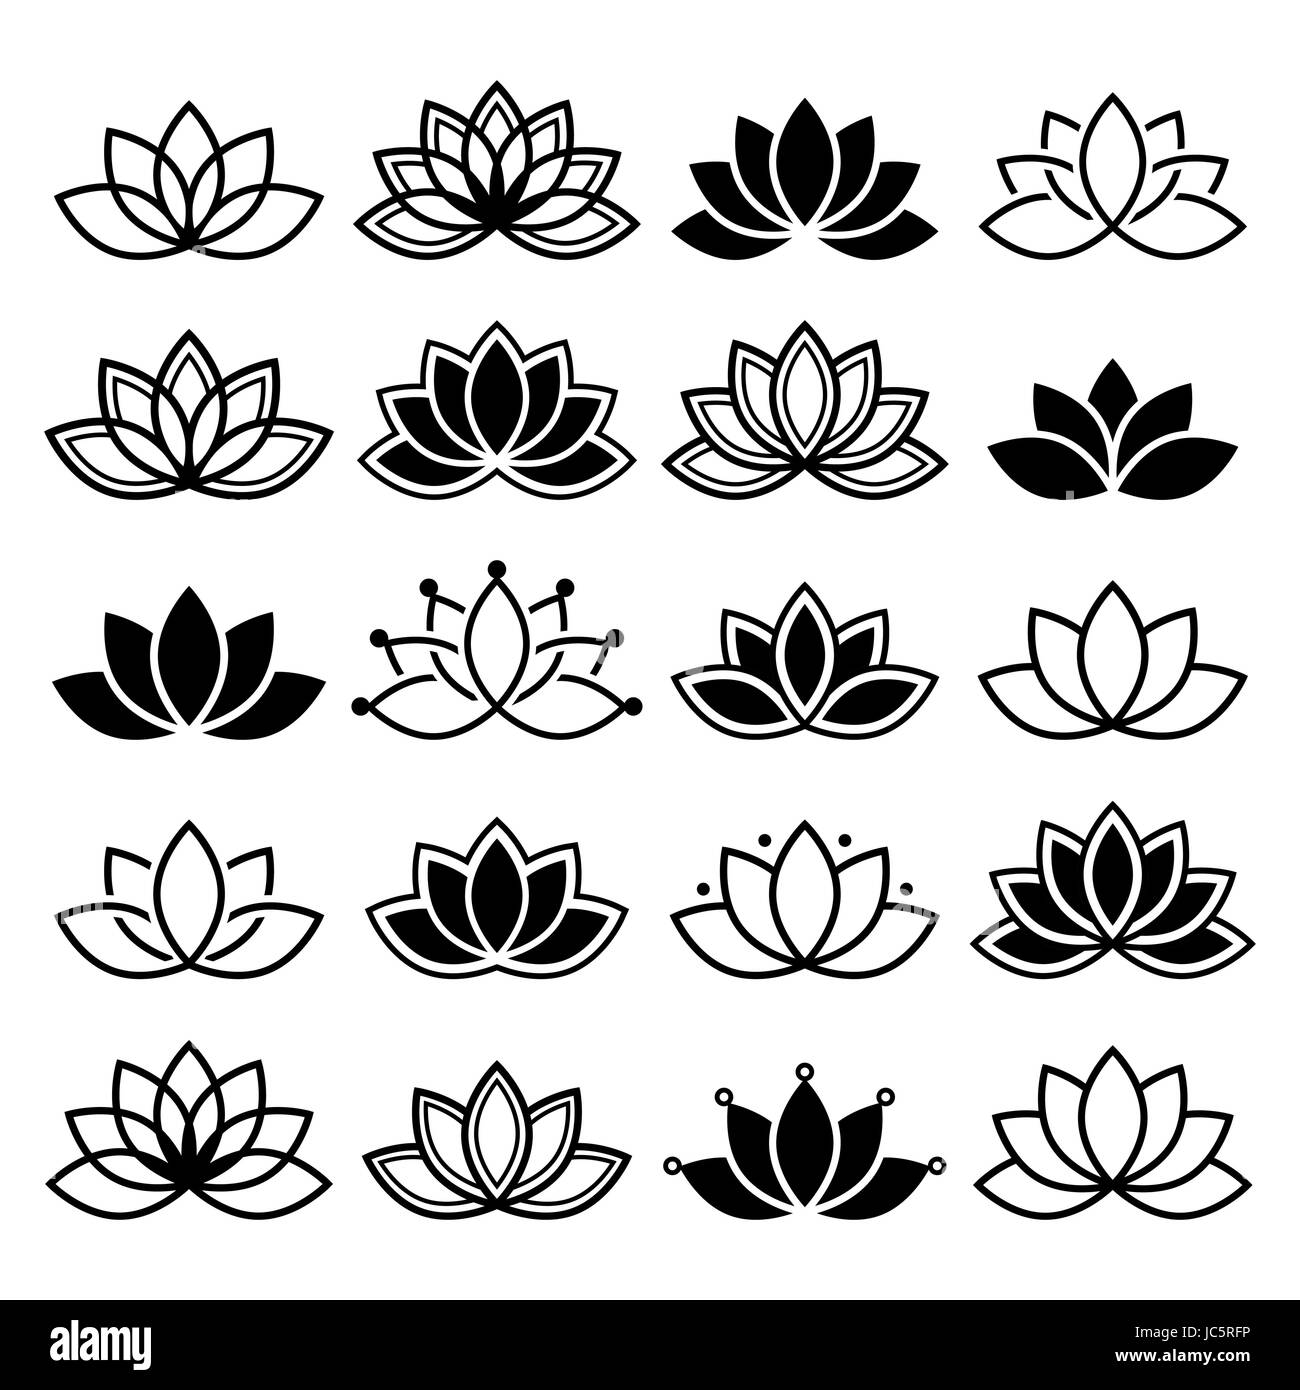 Lotus flower design set yoga vector abstract collection stock lotus flower design set yoga vector abstract collection izmirmasajfo